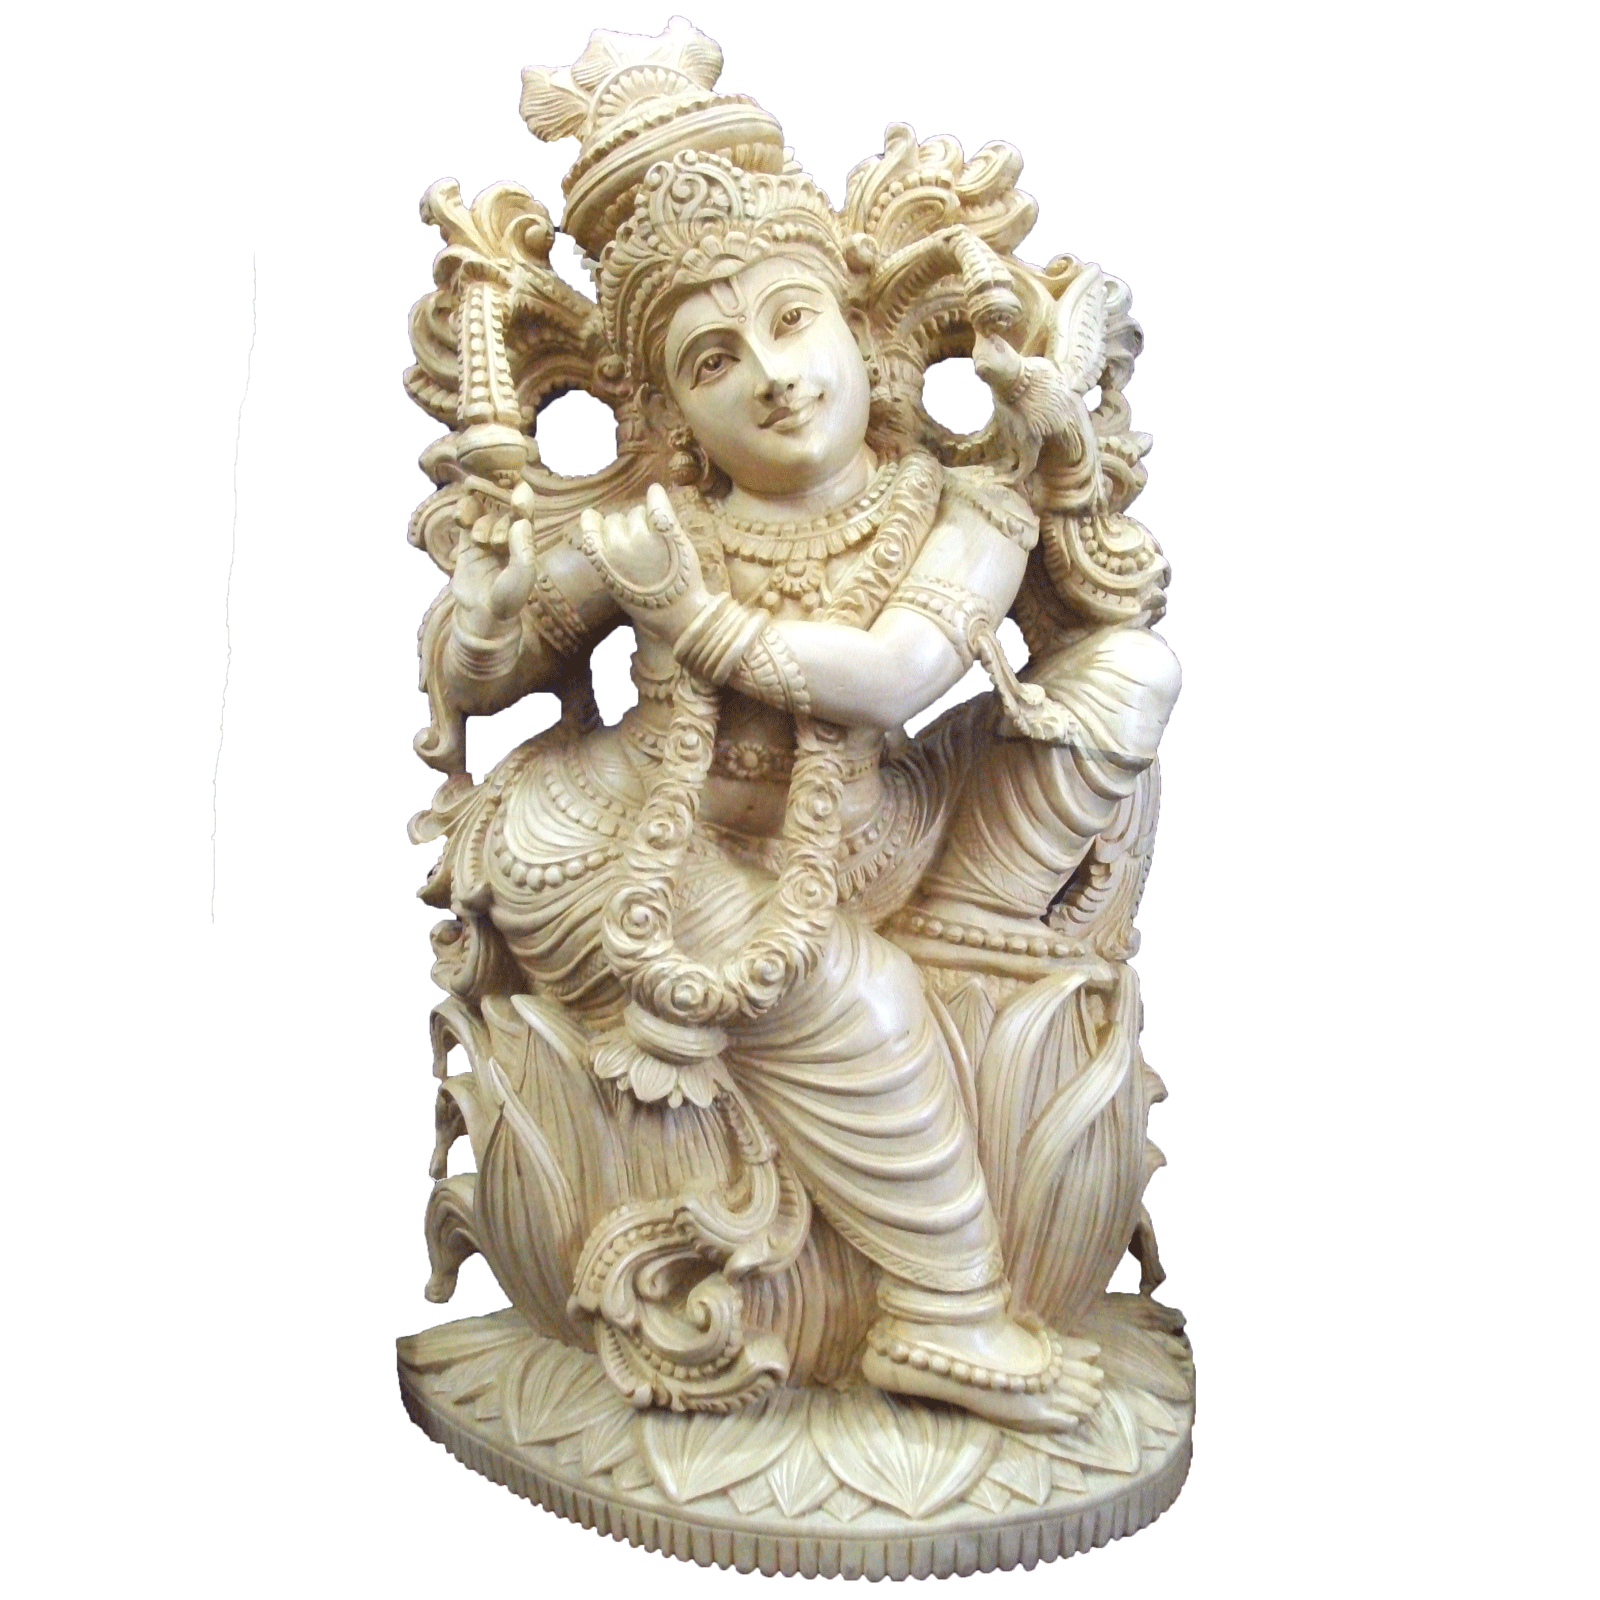 Krishna in sitting position